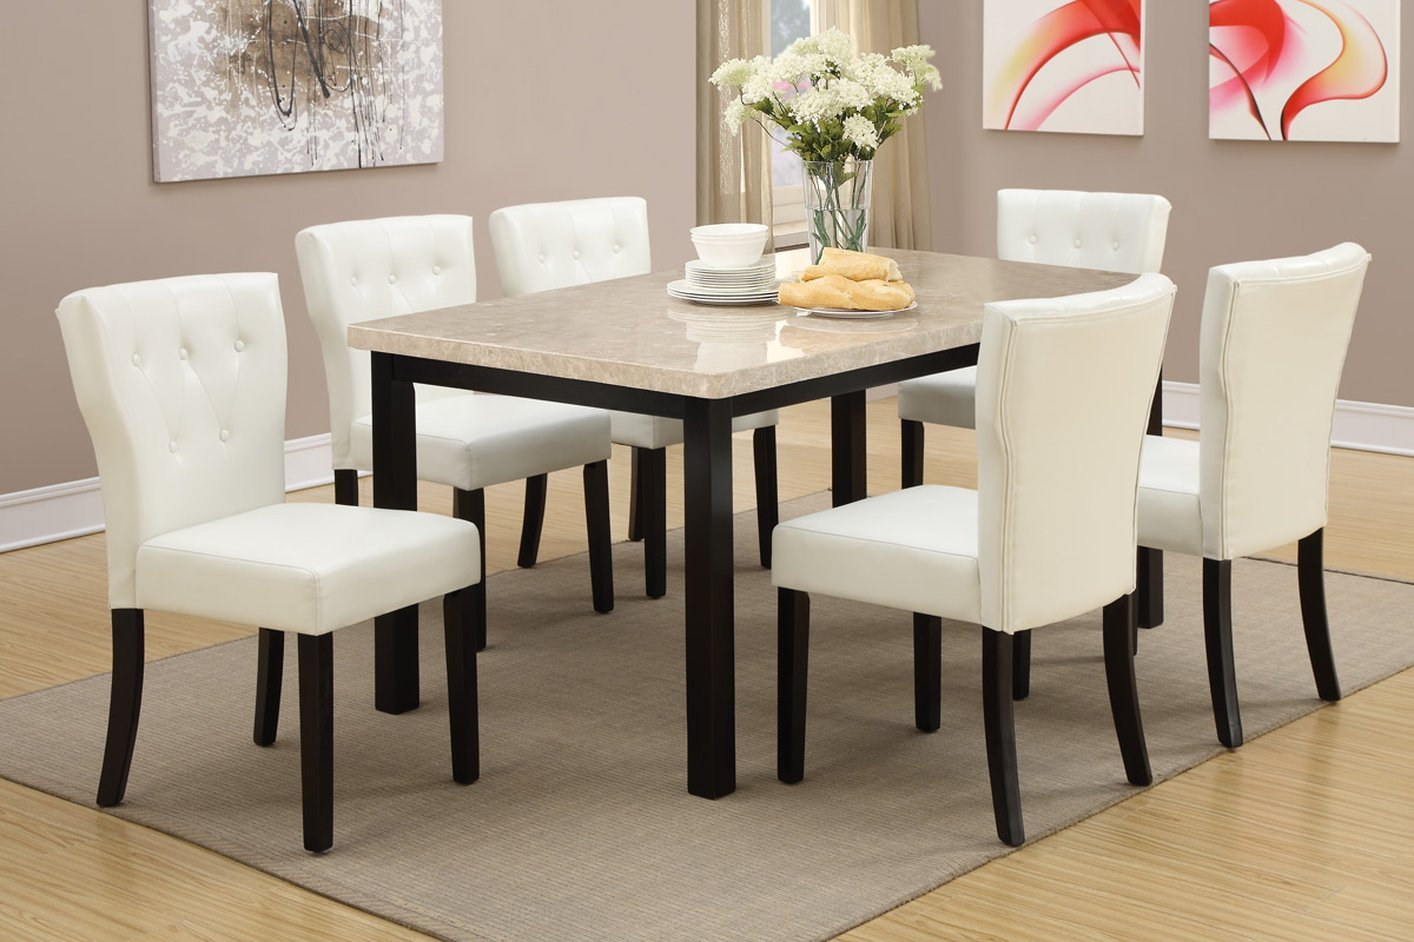 Marble dining table also dining table price also dining room cabinets also dark wood dining table